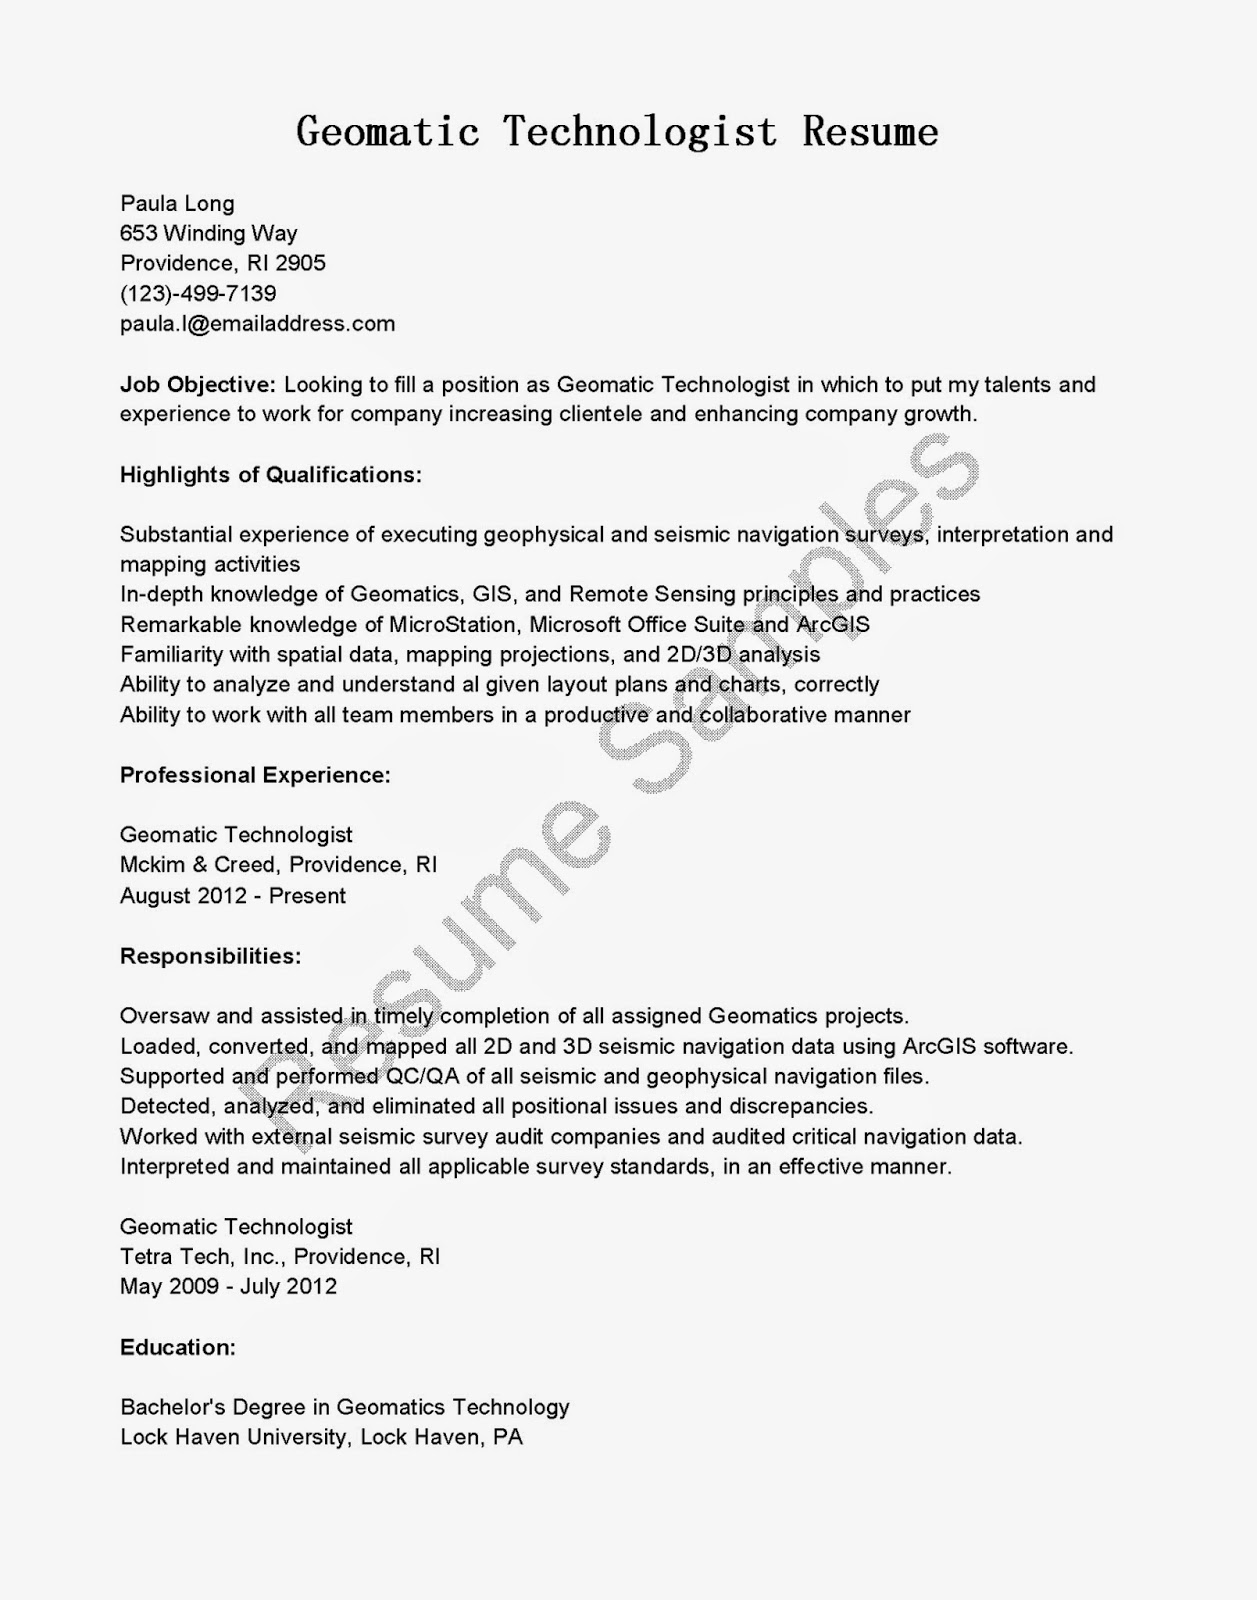 resume samples  geomatic technologist resume sample